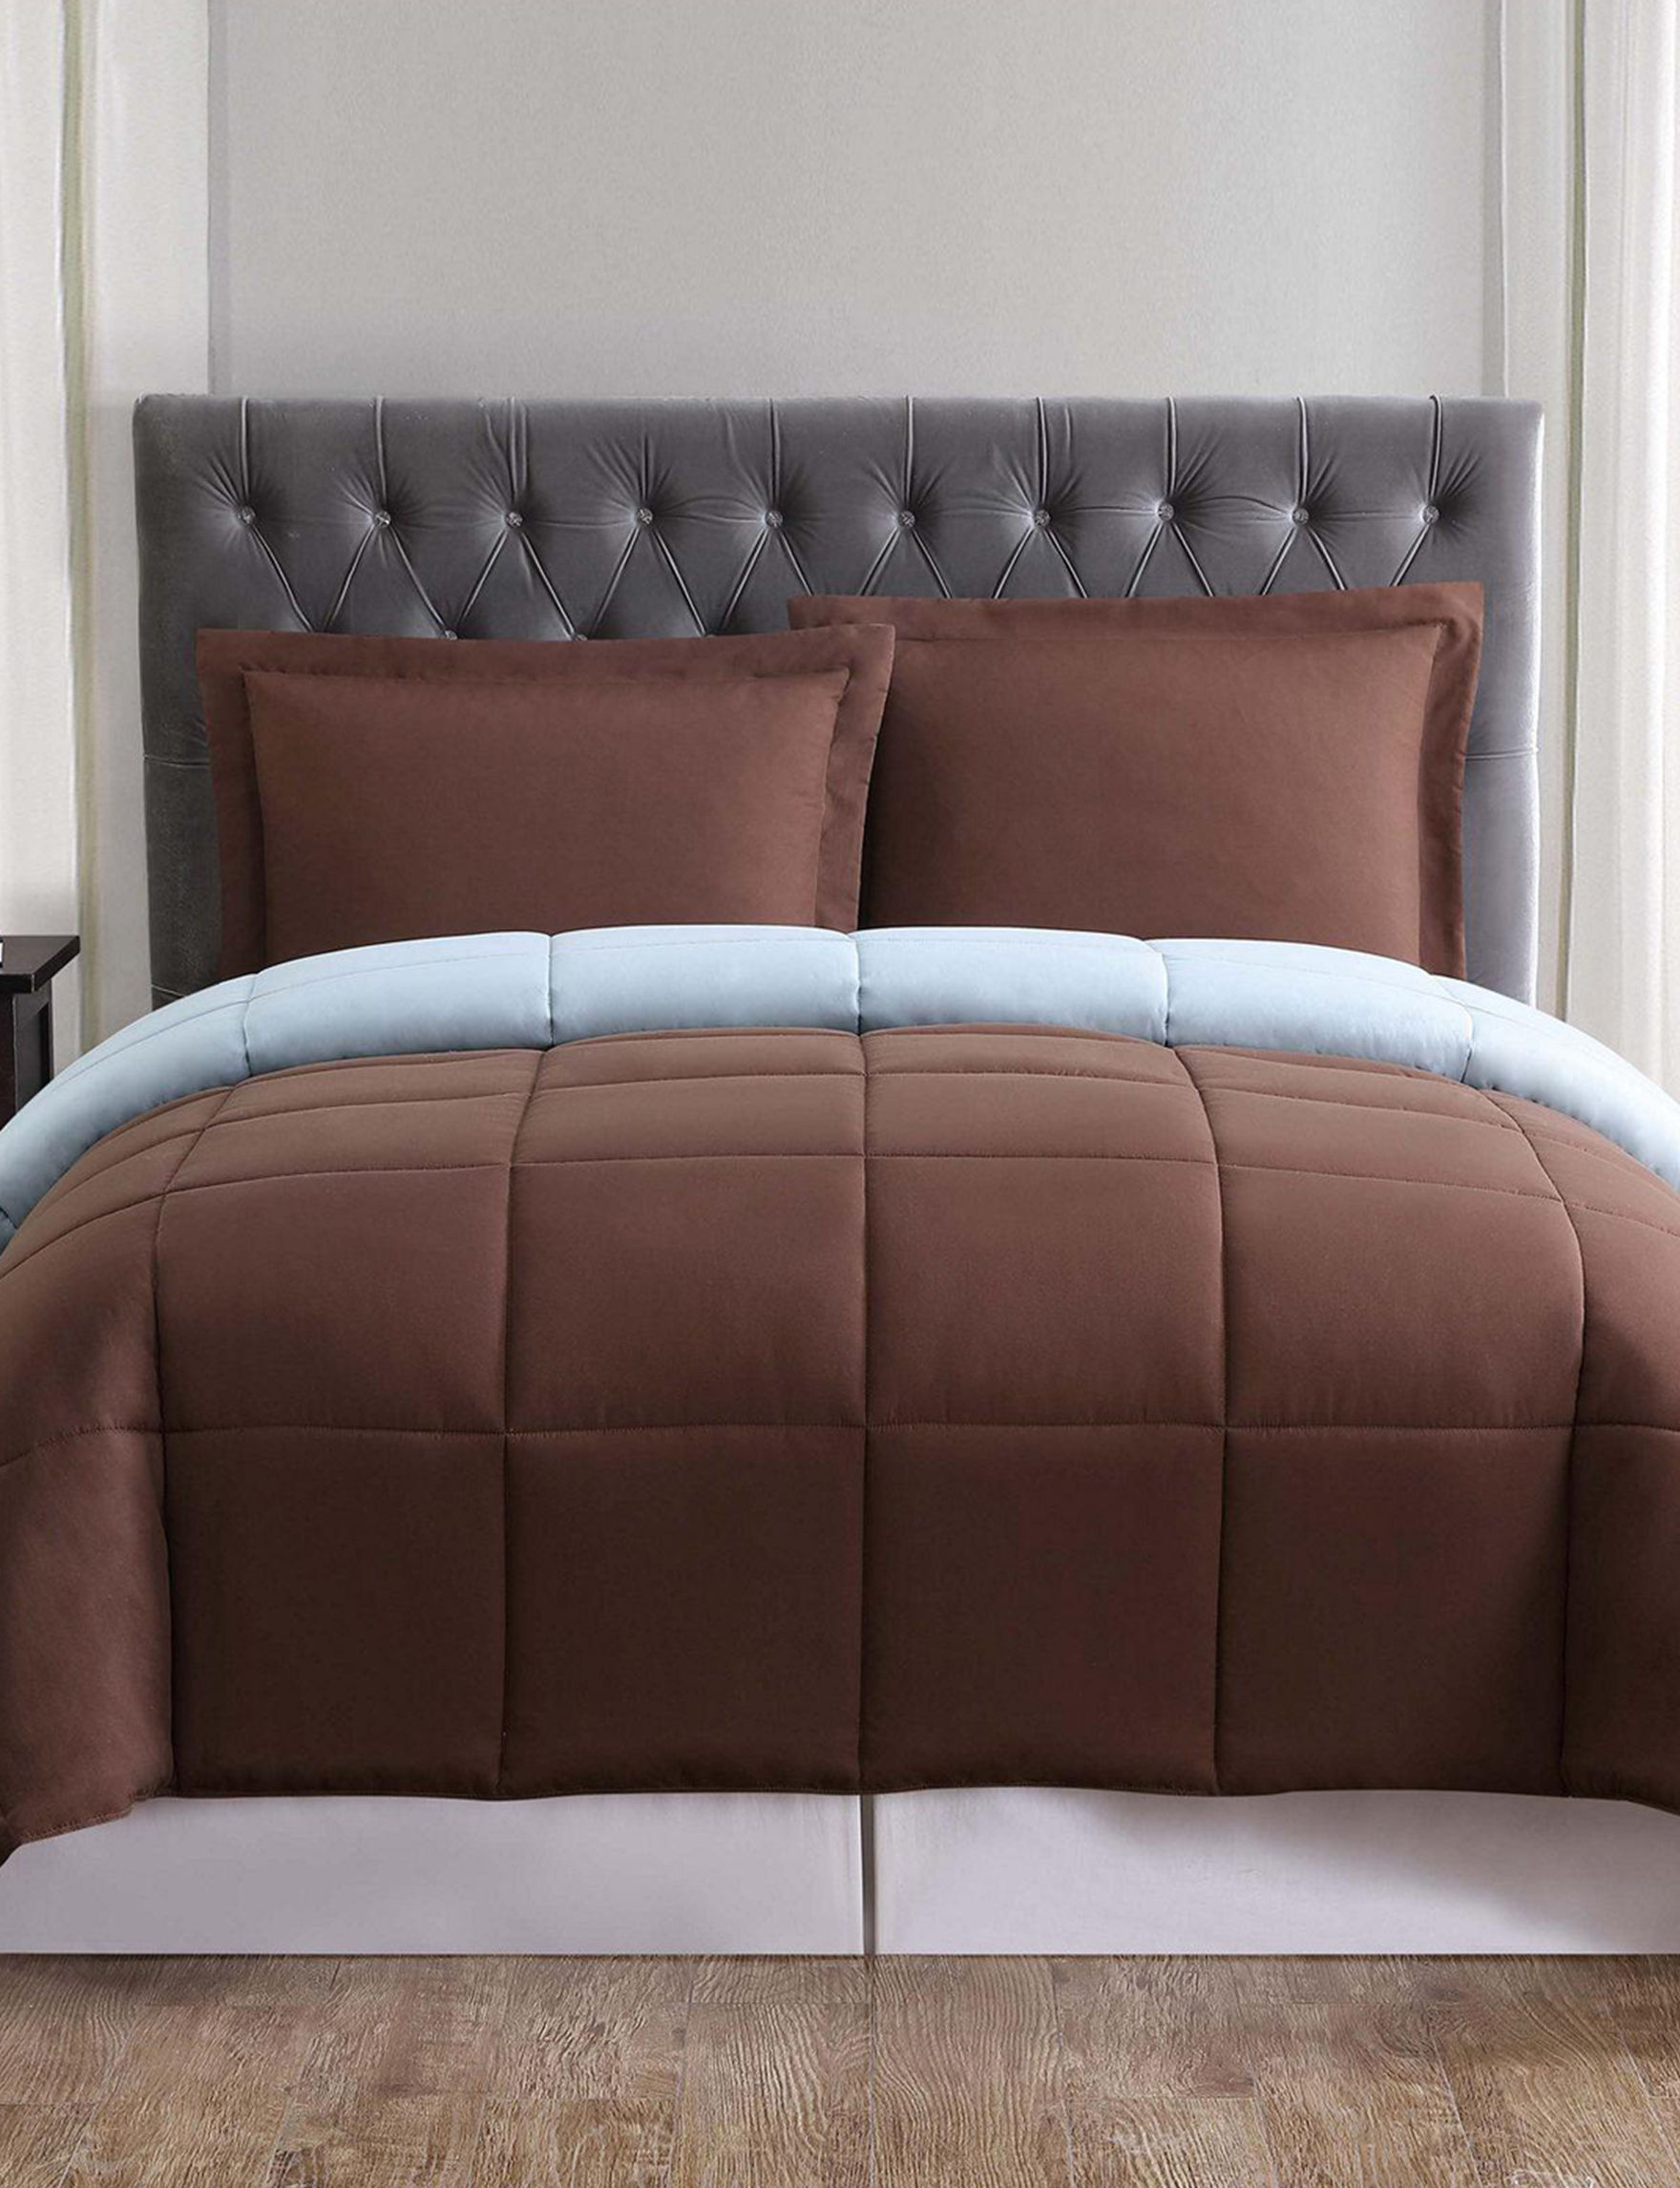 Truly Soft Brown Comforters & Comforter Sets